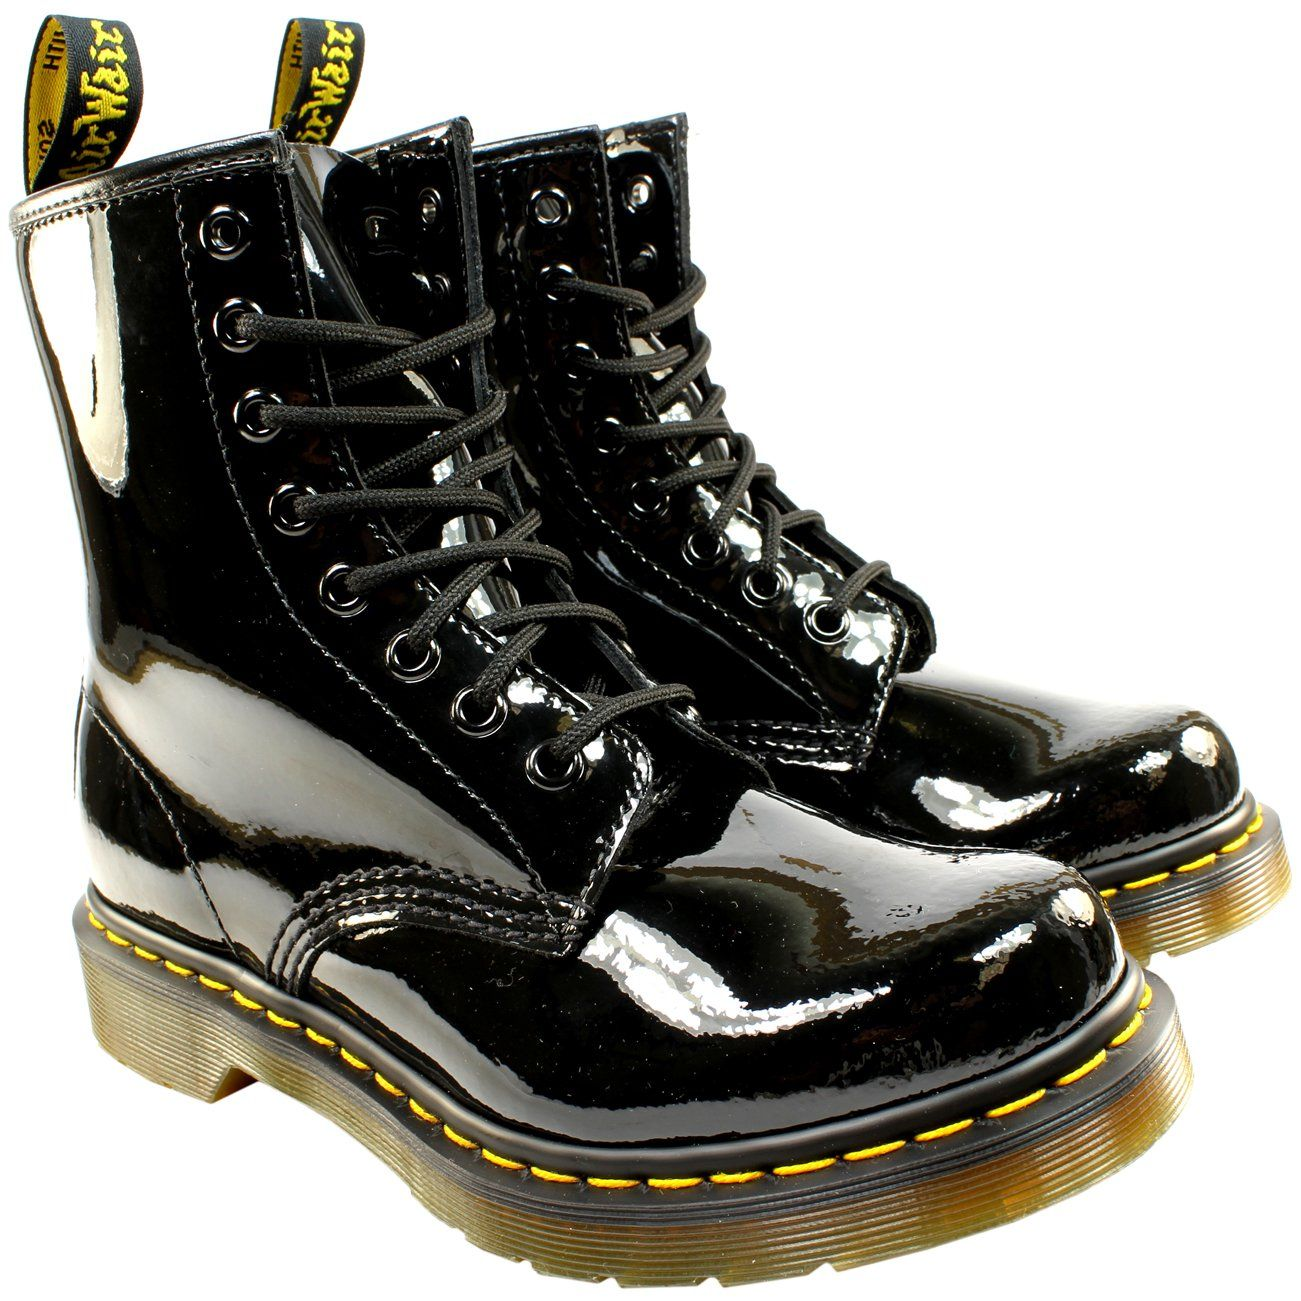 Dr Martens Womens 1460 W 8 Eyelet Patent Lamper Army Combat Lace Up Boot Black 8 See This Great Product This Is Boots Lace Up Boots Womens Ankle Boots